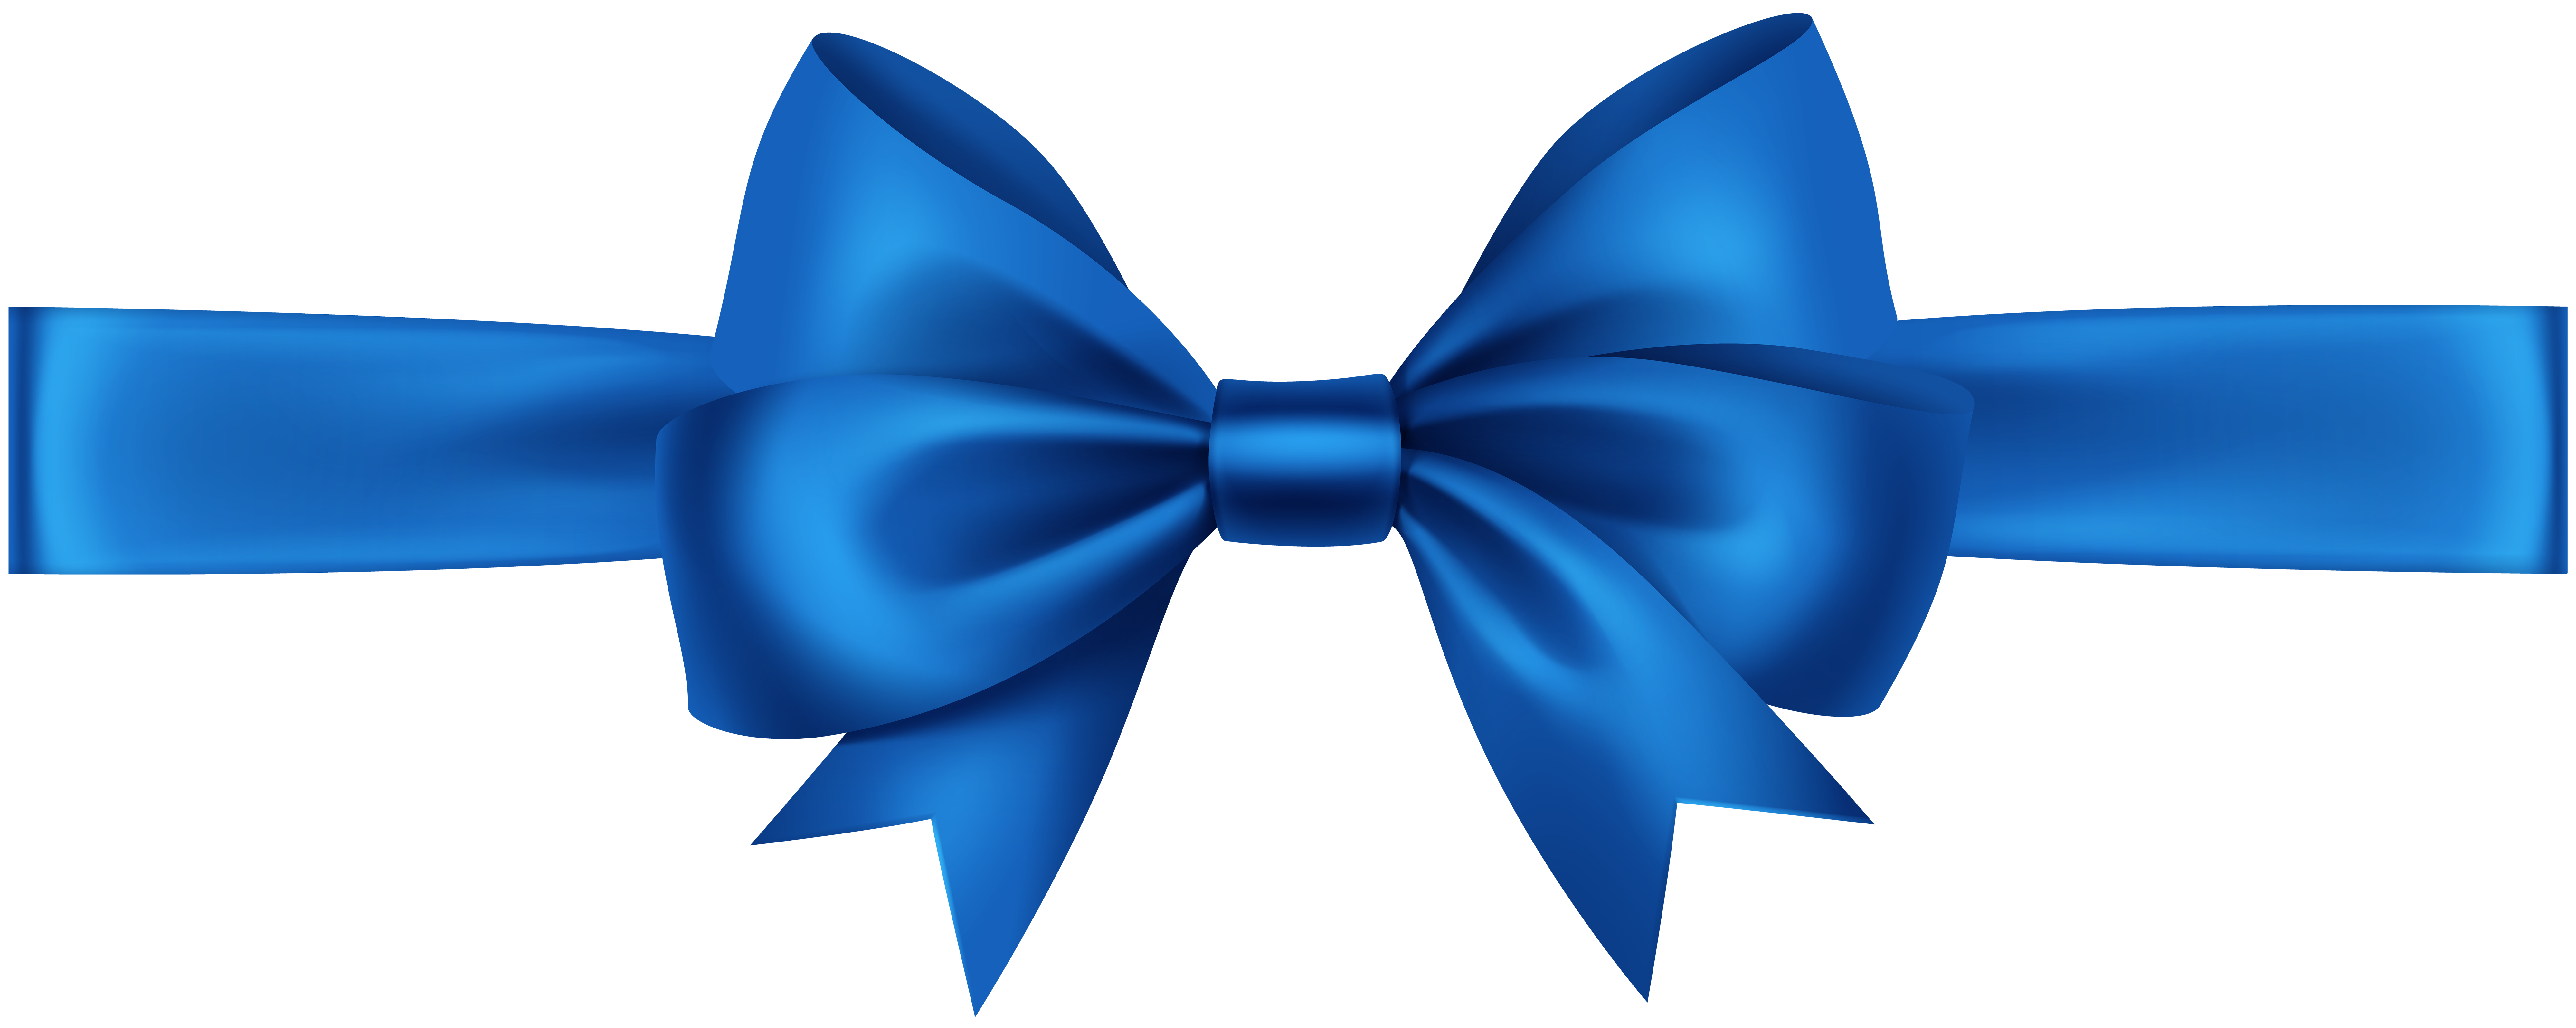 Blue Ribbon Picture free photo: blue ribbon - present, photography, party - free